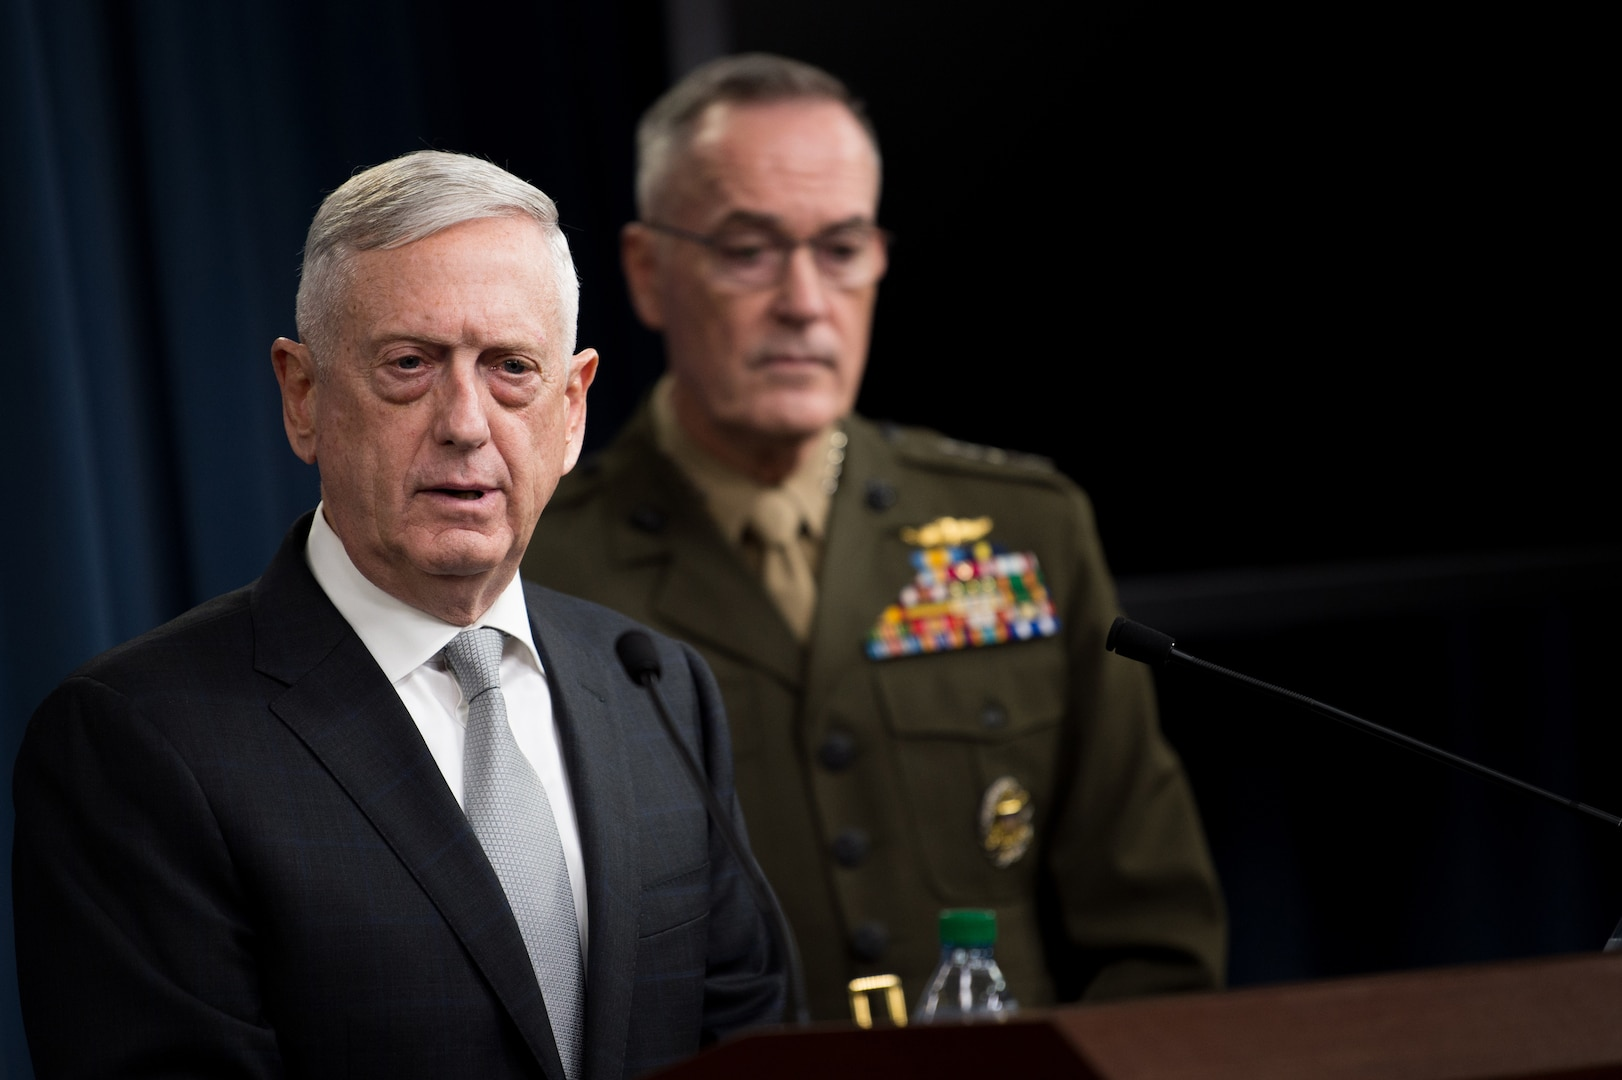 Defense Secretary James N. Mattis speaks at a lectern while Marine Corps Gen. Joe Dunford stands by.